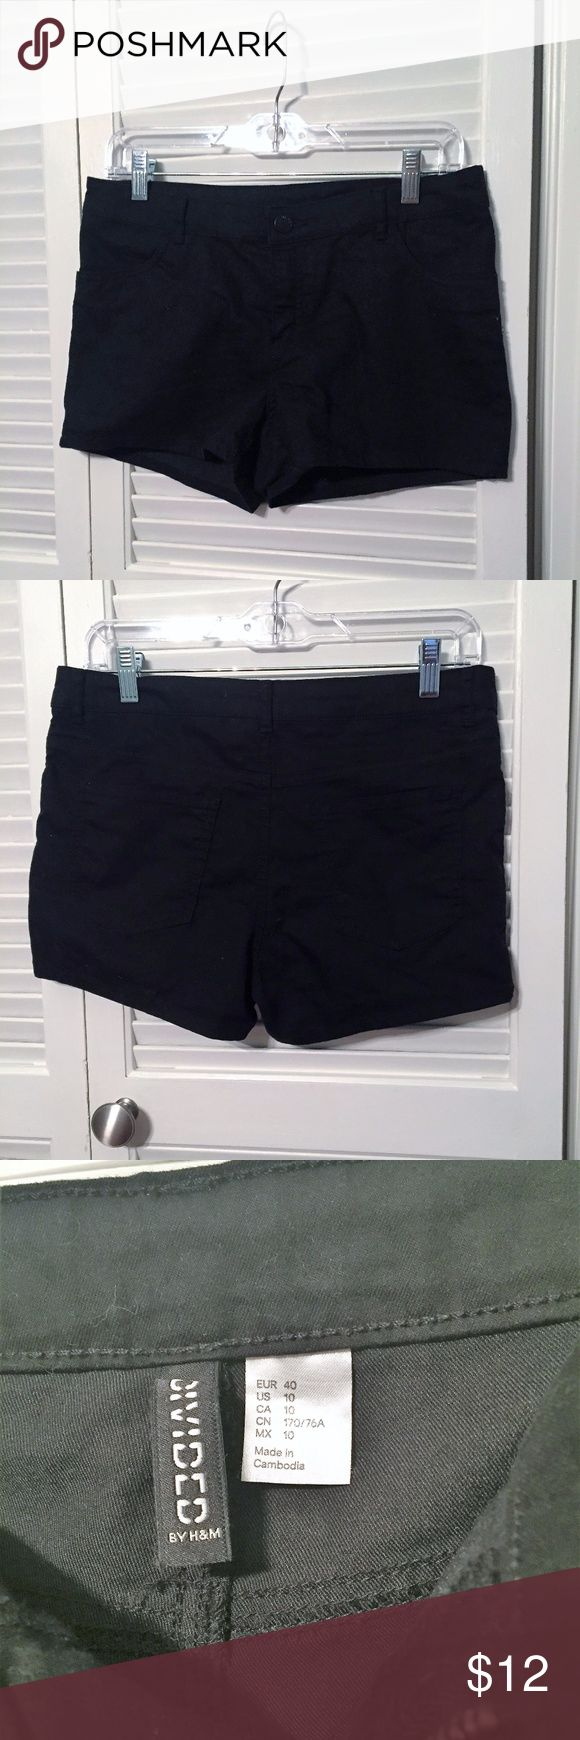 """Black Divided by H&M Shorts (sz 10) Divided by H&M black shorts. 69% cotton / 29% poly. Inseam 2.5"""".  Size 10. H&M Shorts"""